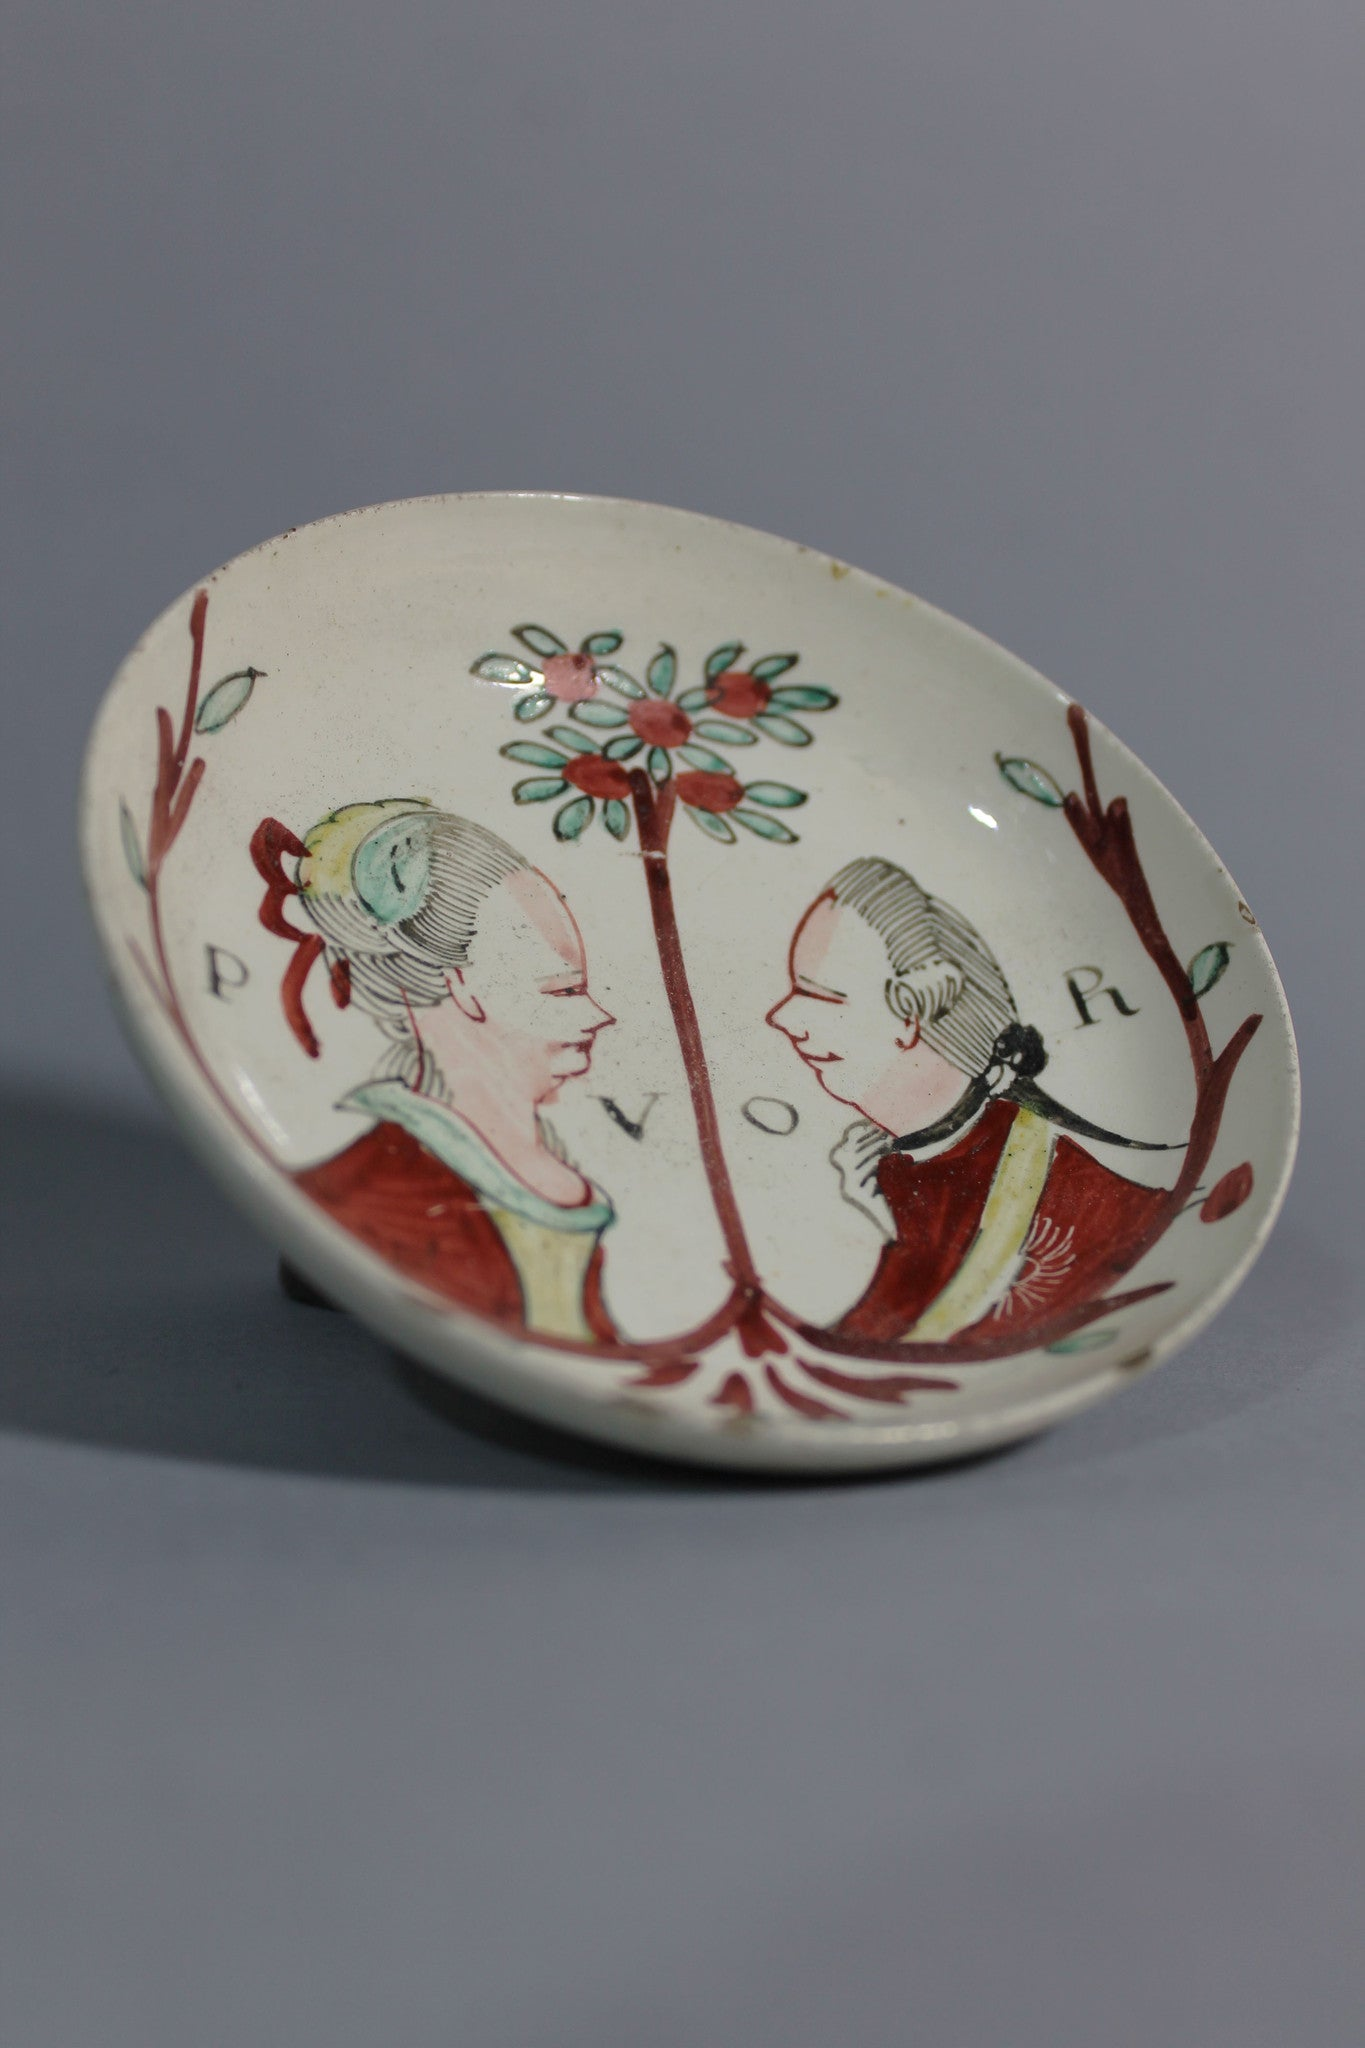 William of Orange commemorative creamware bowl c. 1770